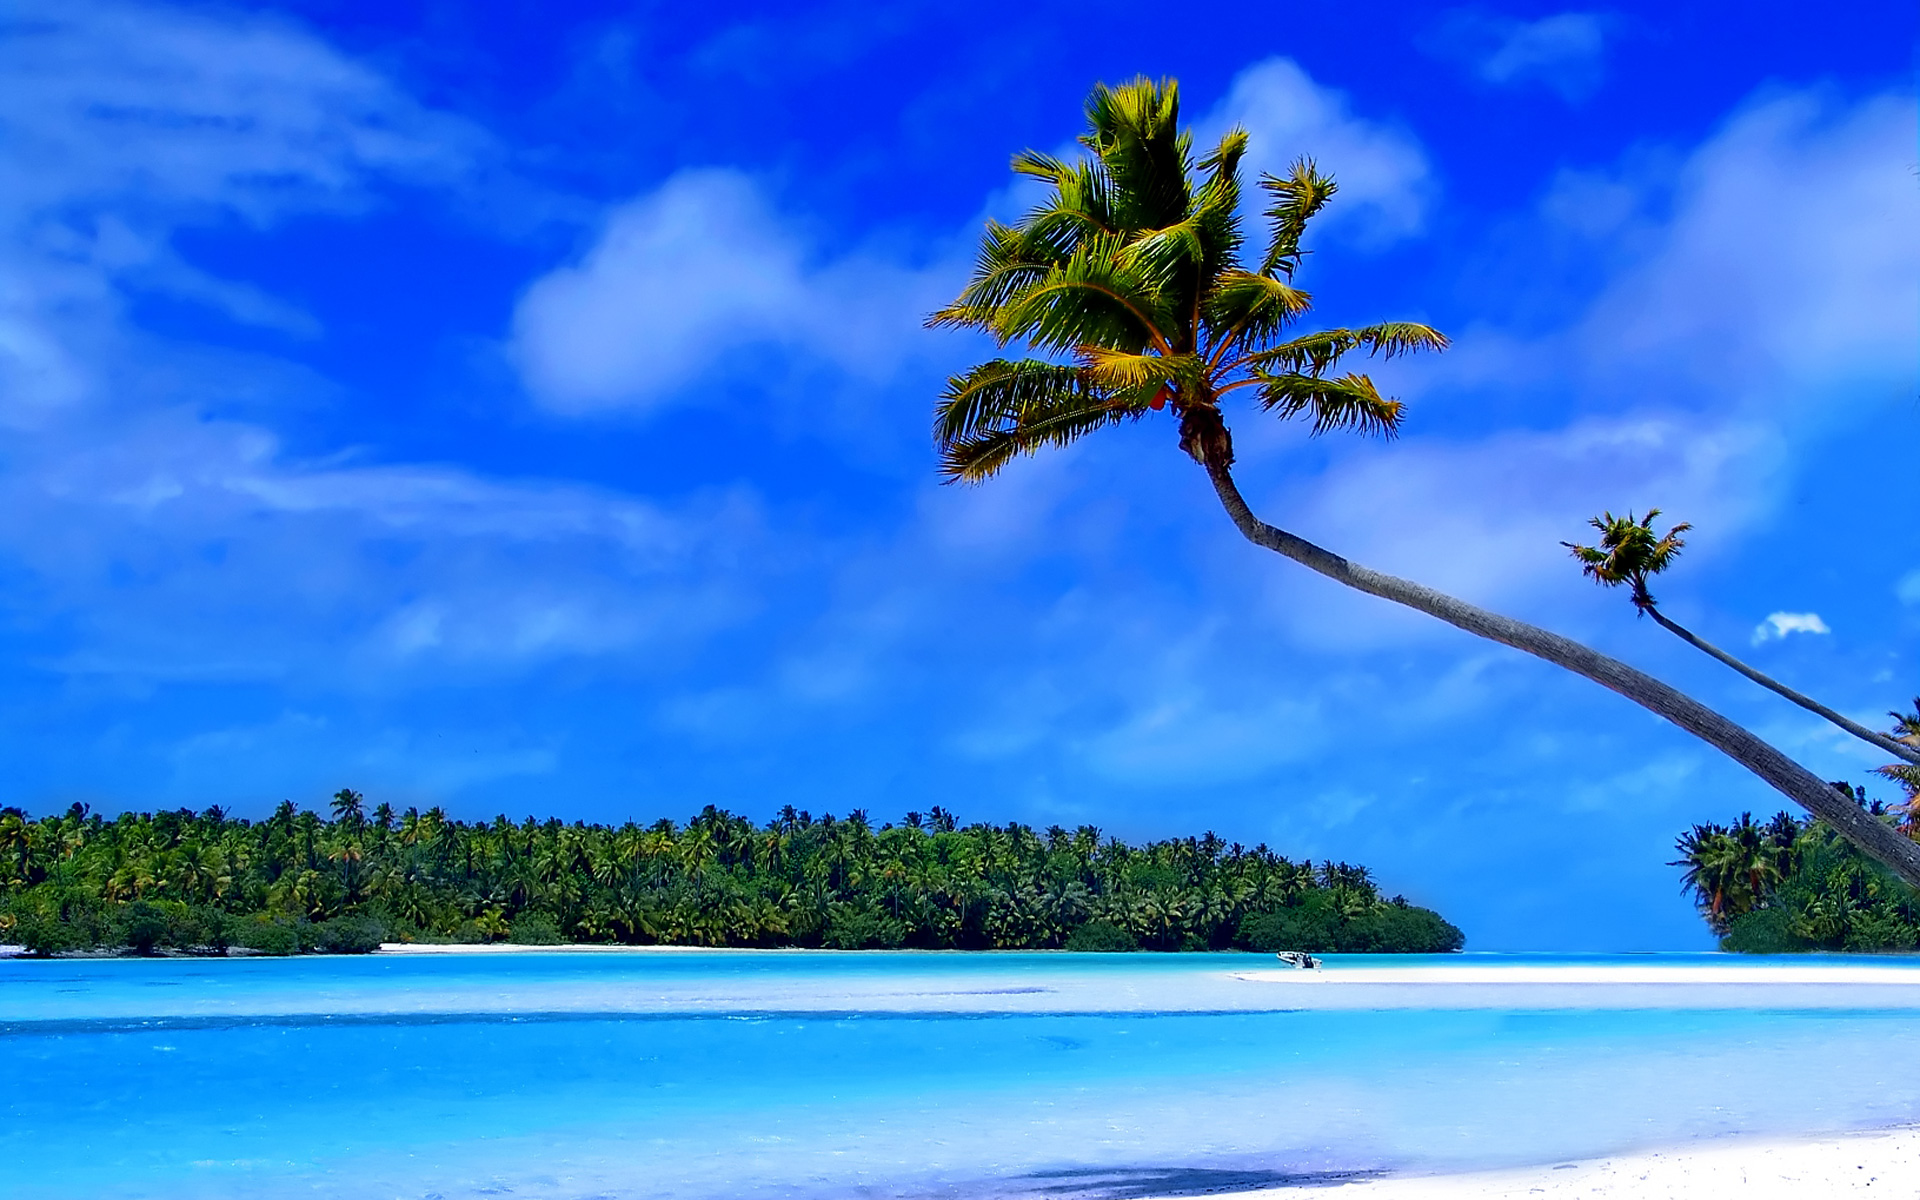 The Caribbean islands wallpaper   Beach Wallpapers 1920x1200